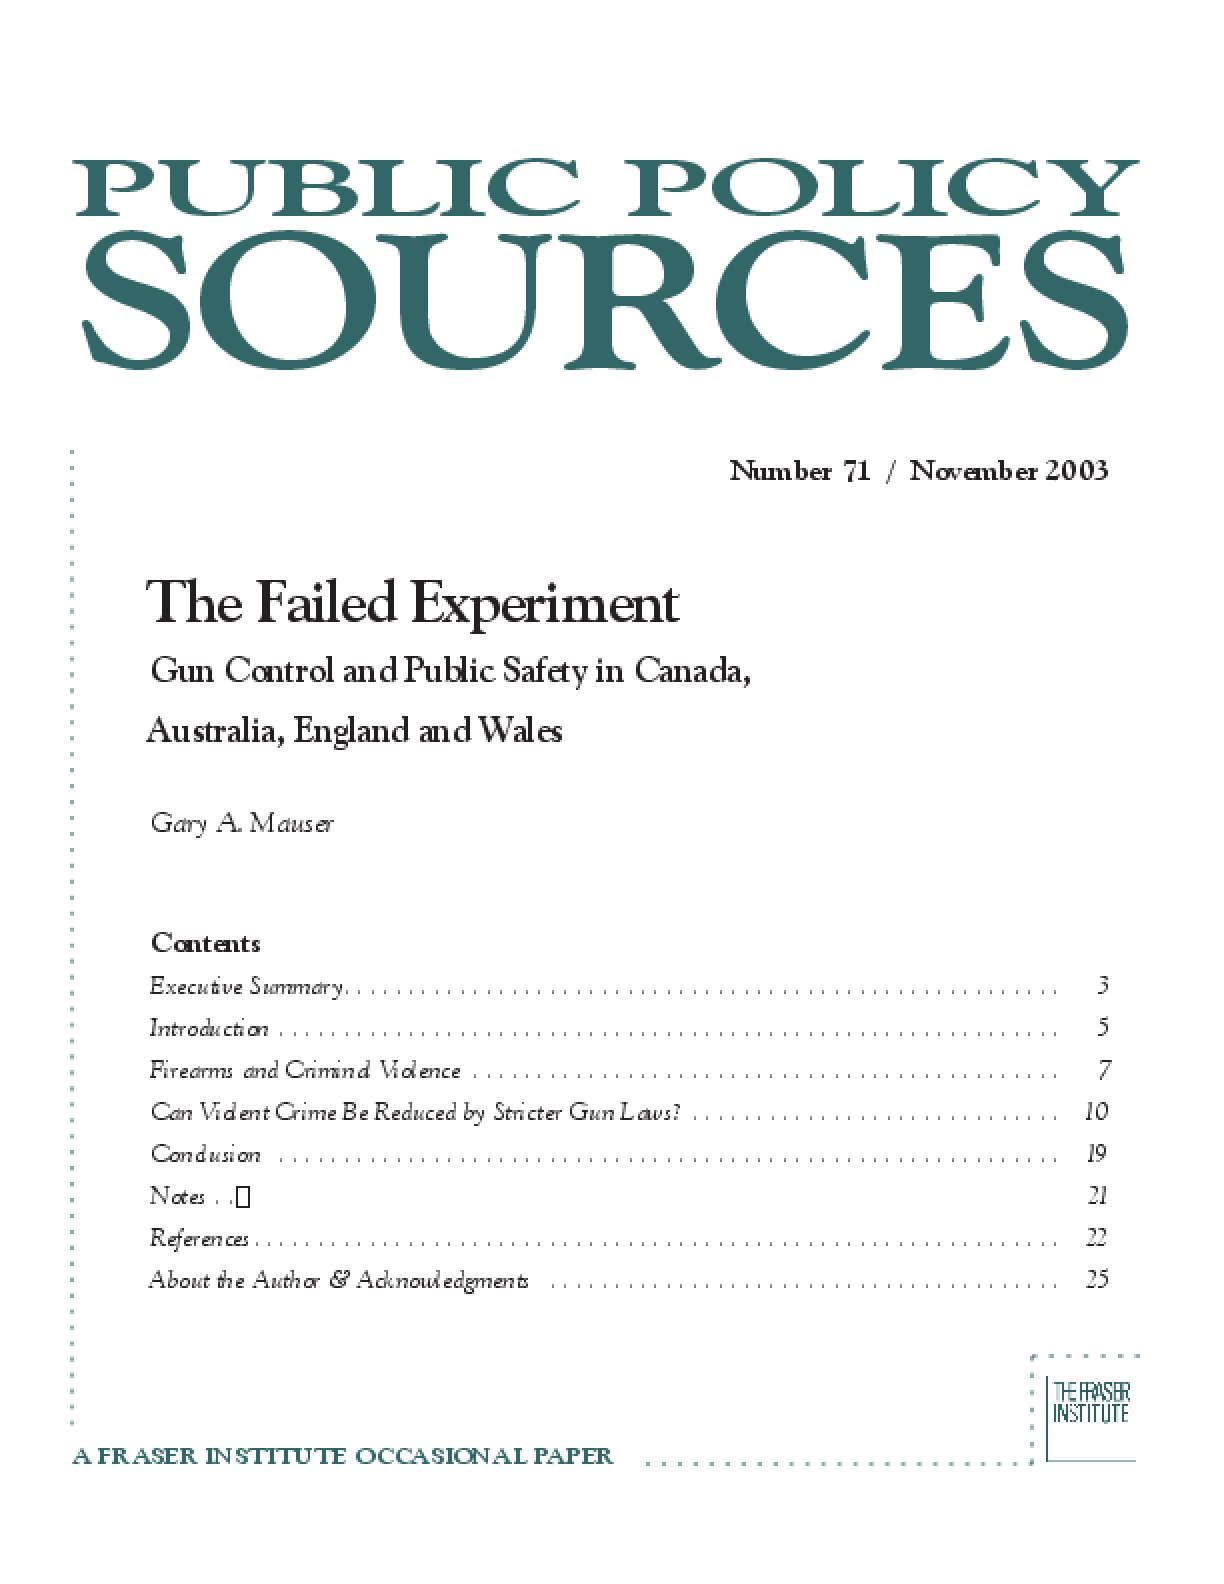 The Failed Experiment: Gun Control and Public Safety in Canada, Australia, England and Wales